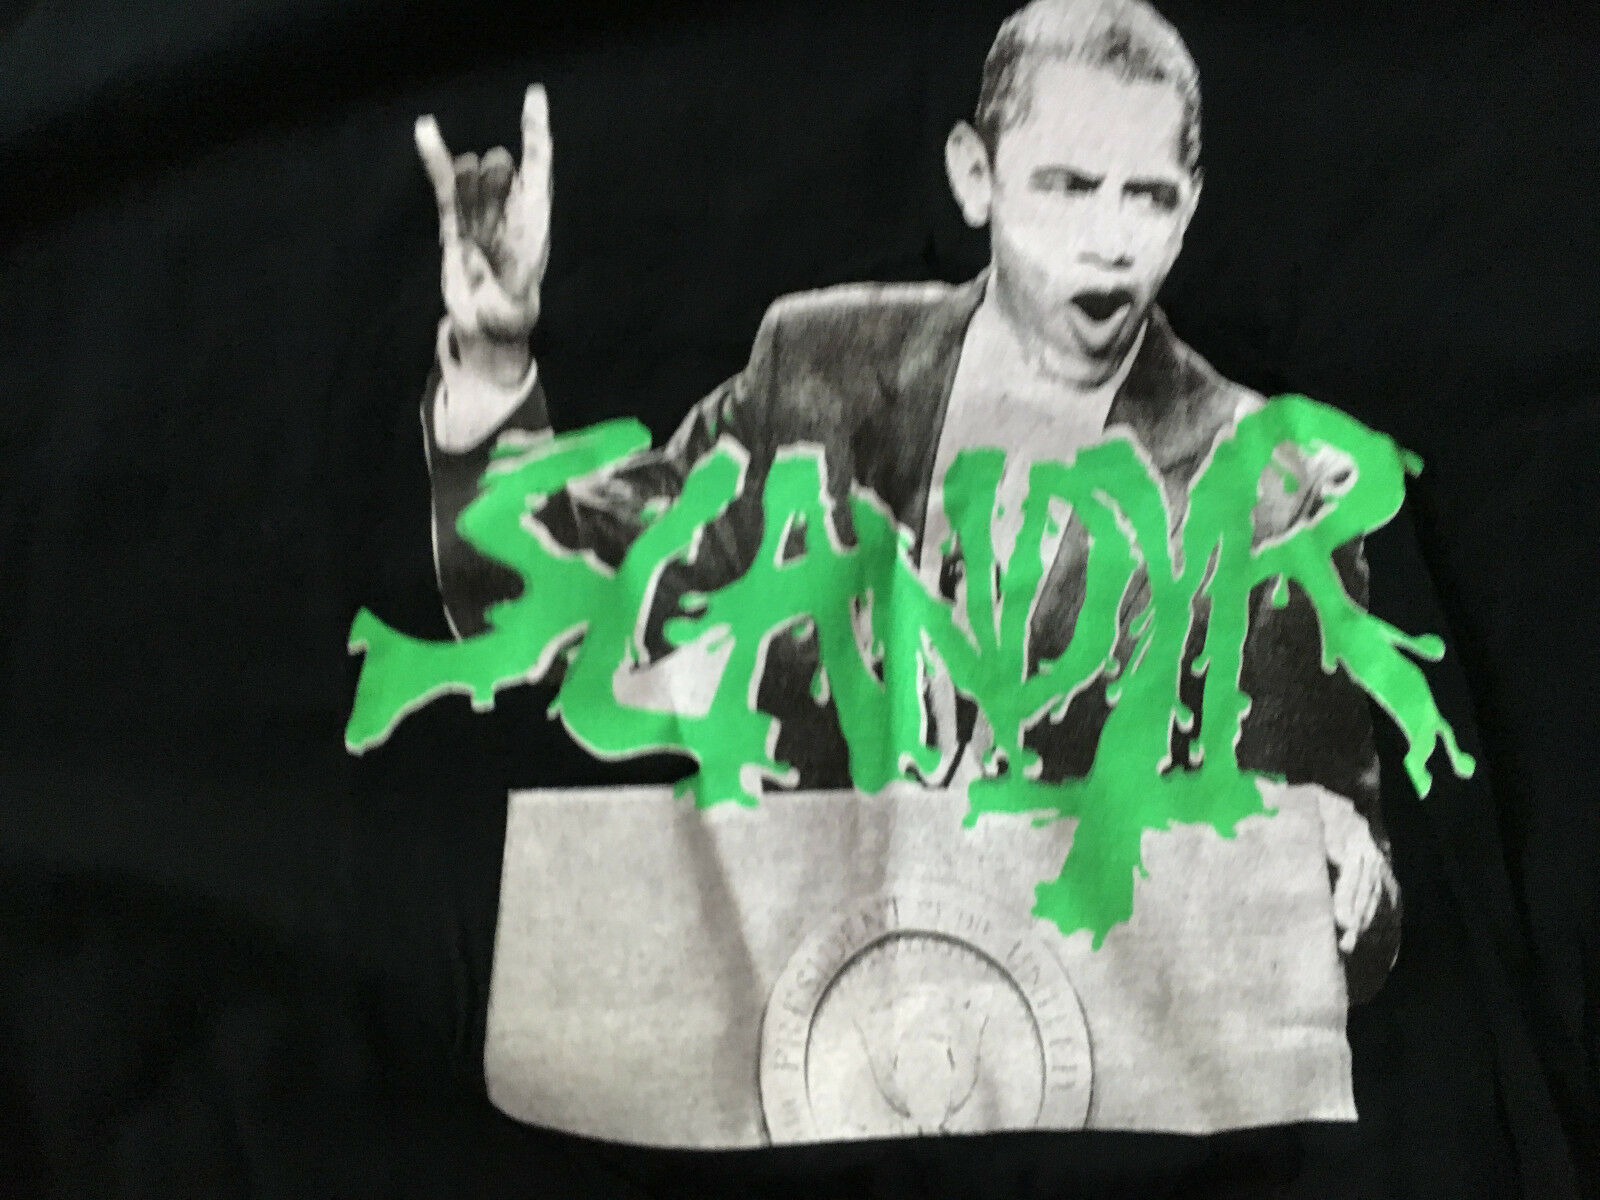 NEW Vintage Scandyr F.Y.B.S. Records Punk Metal Thrash Shirt 2XL FYBS XXL NWOT FYBS 2XL 696d46